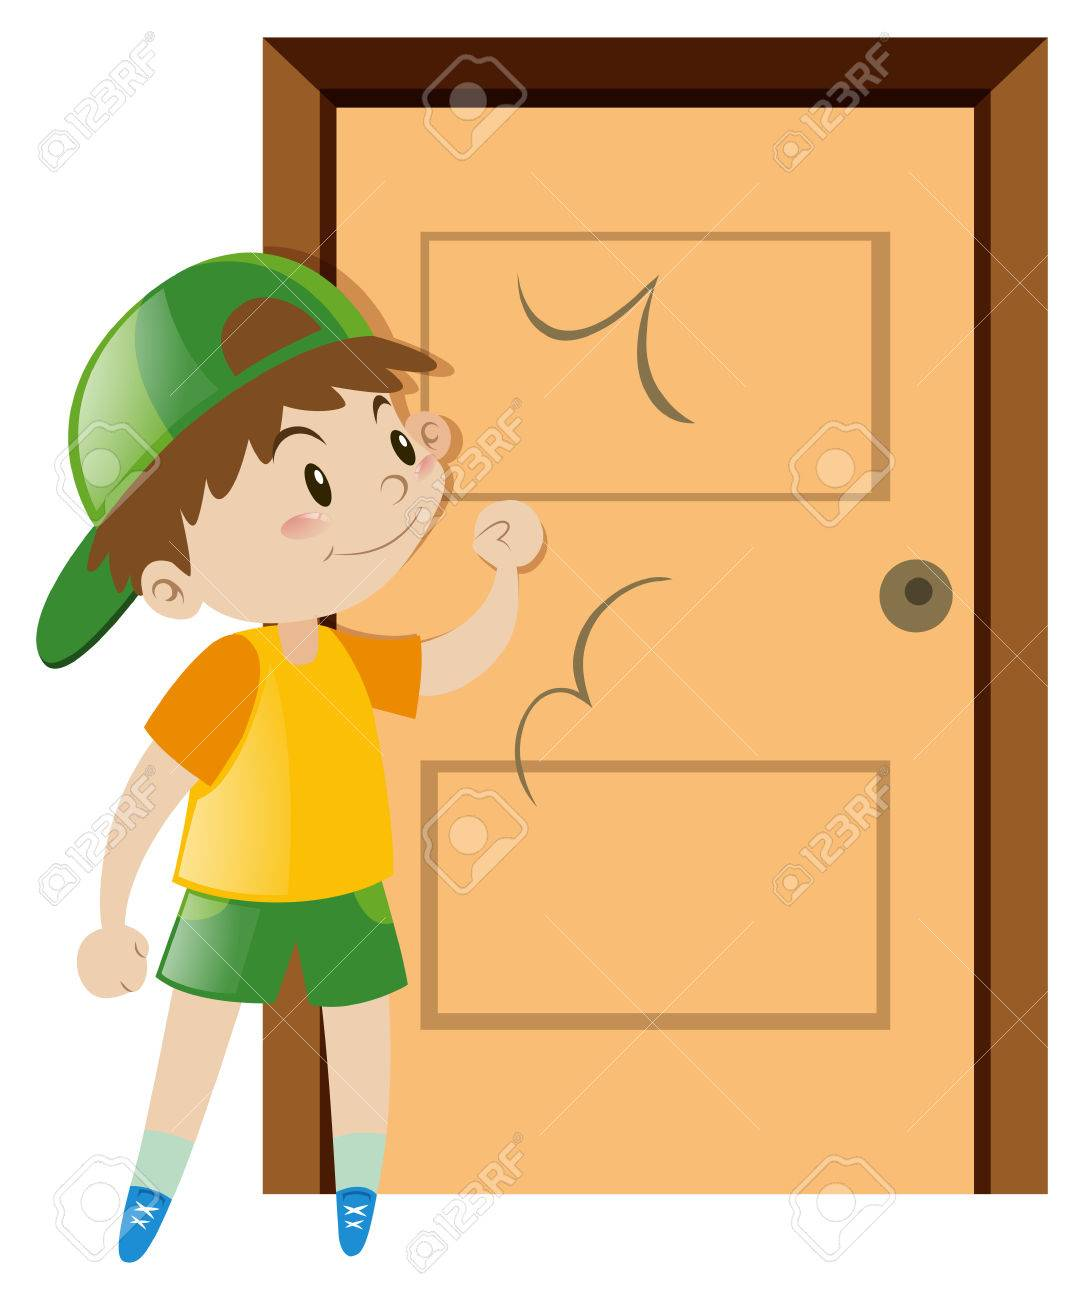 Download Free png Download for Free the Top of 2018 Doorway Clipart.